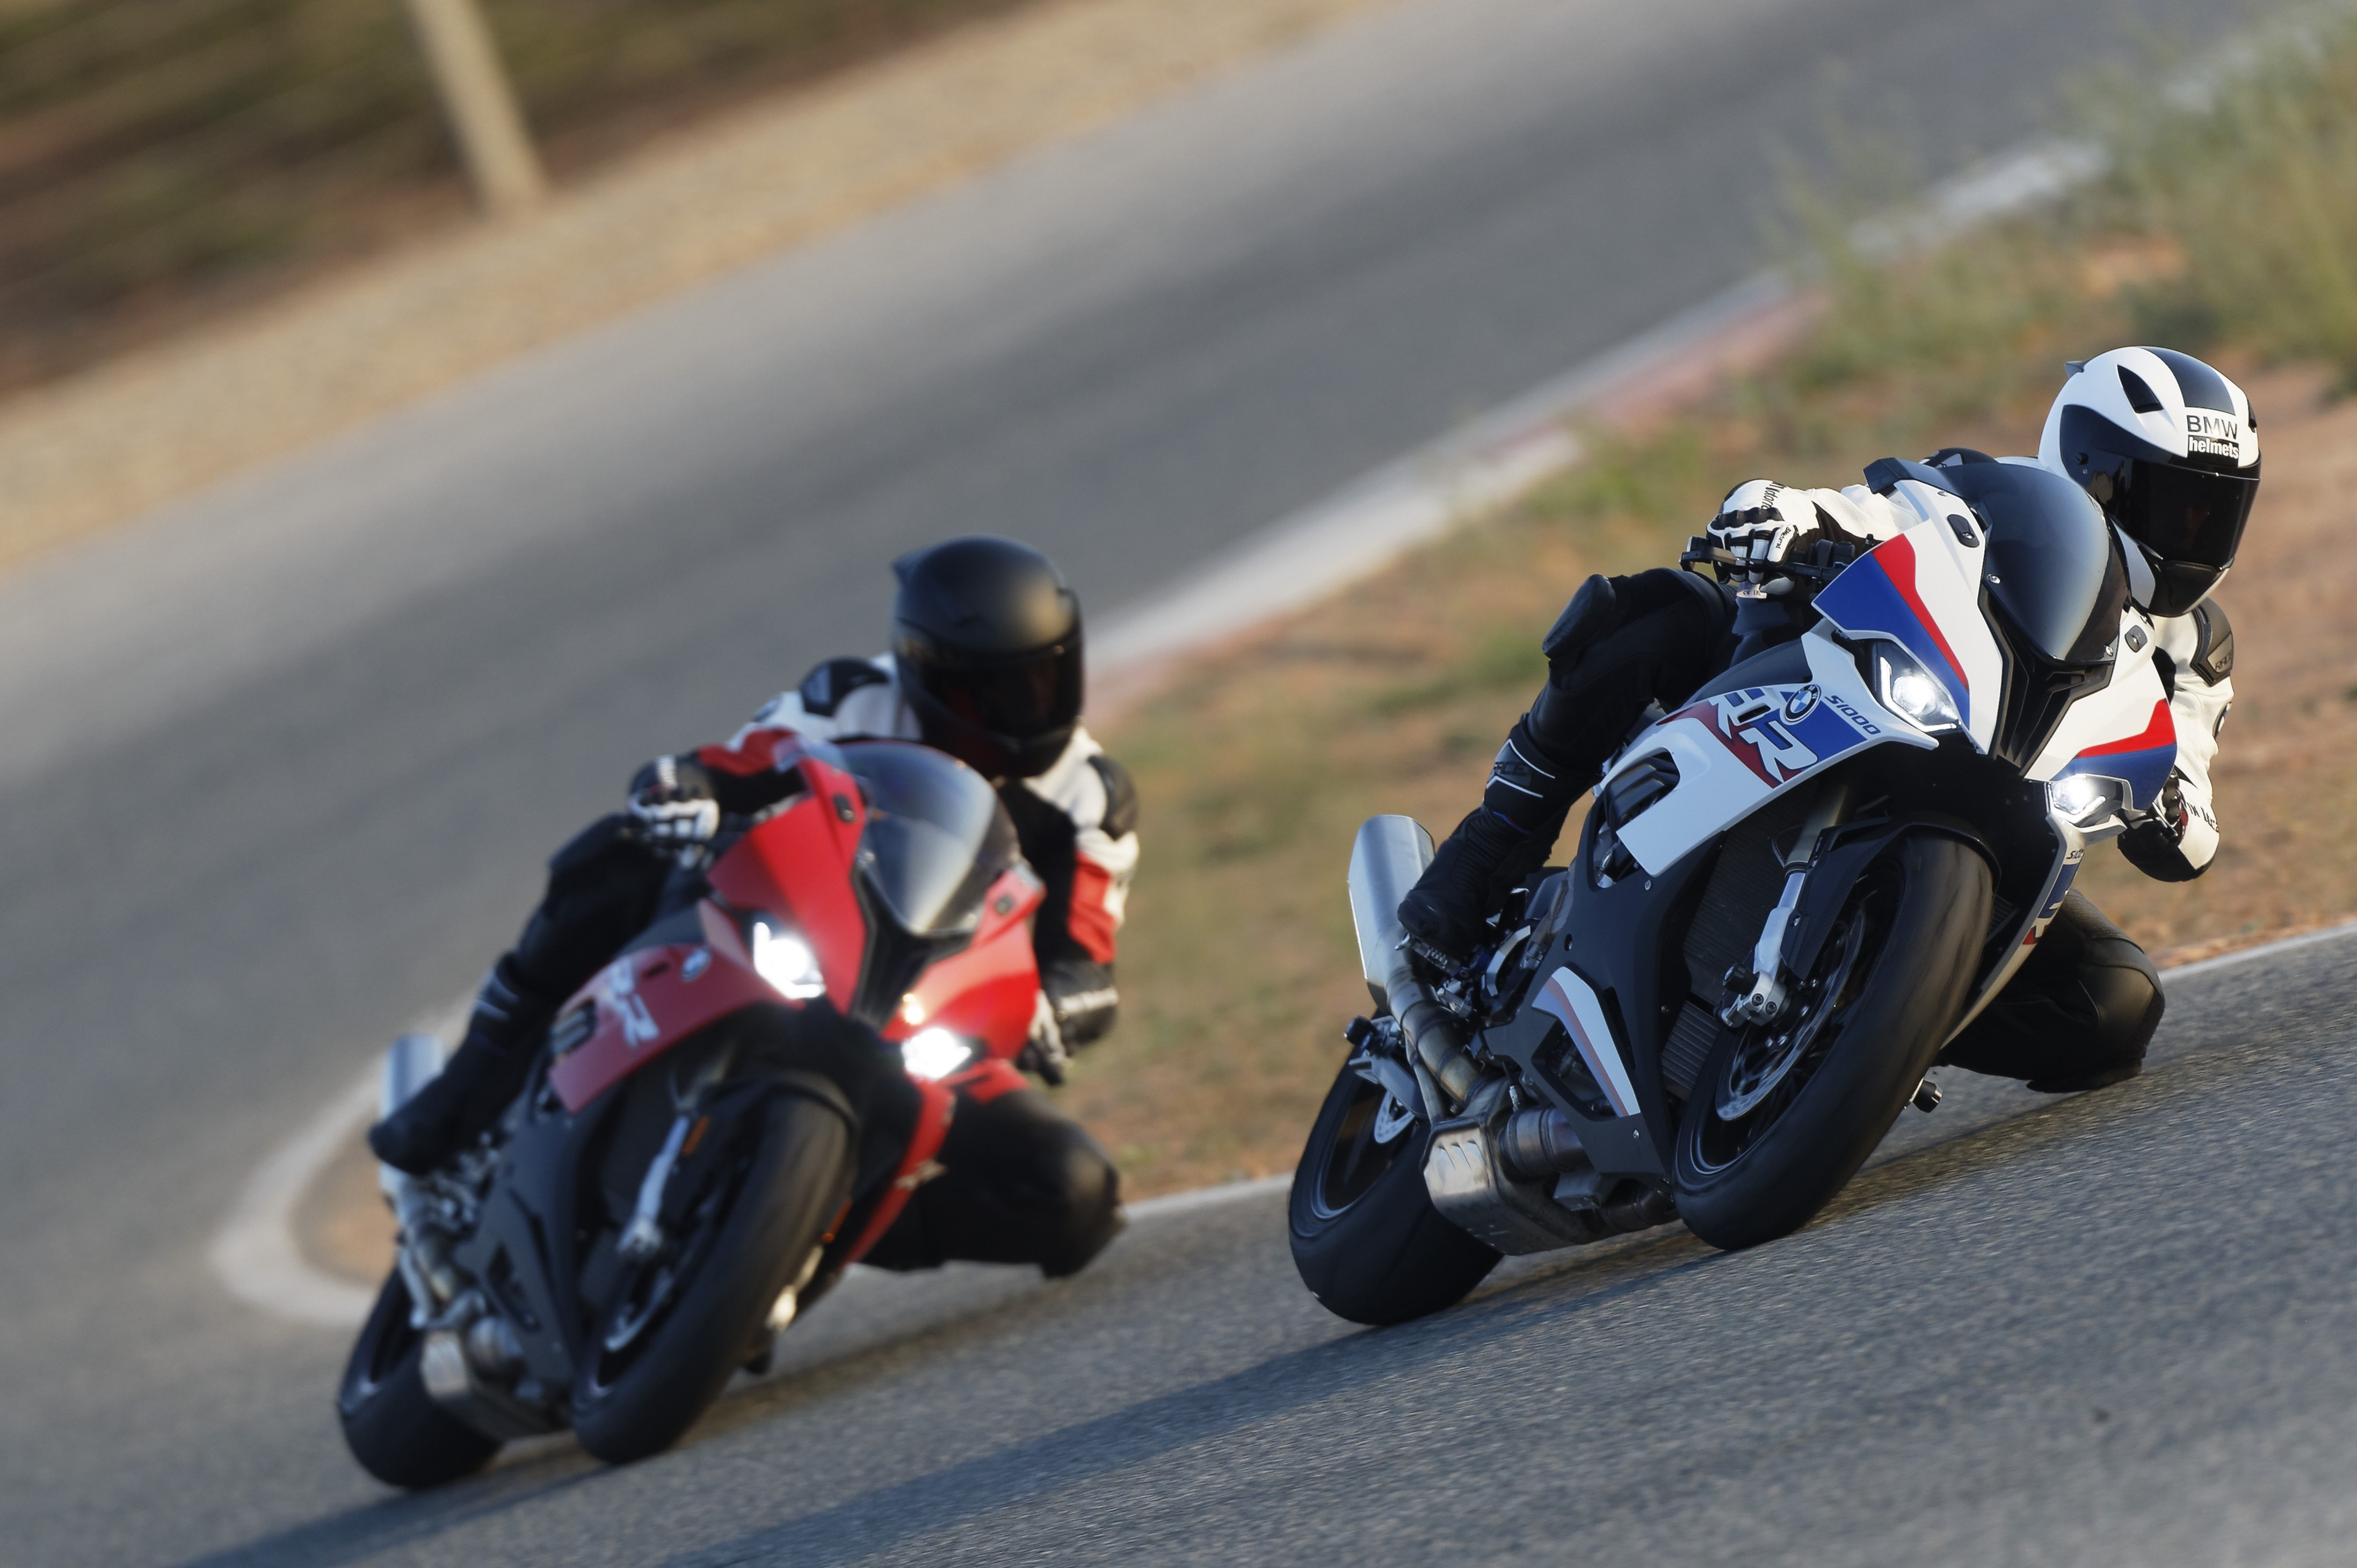 2019 BMW S 1000 RR: All You Need To Know